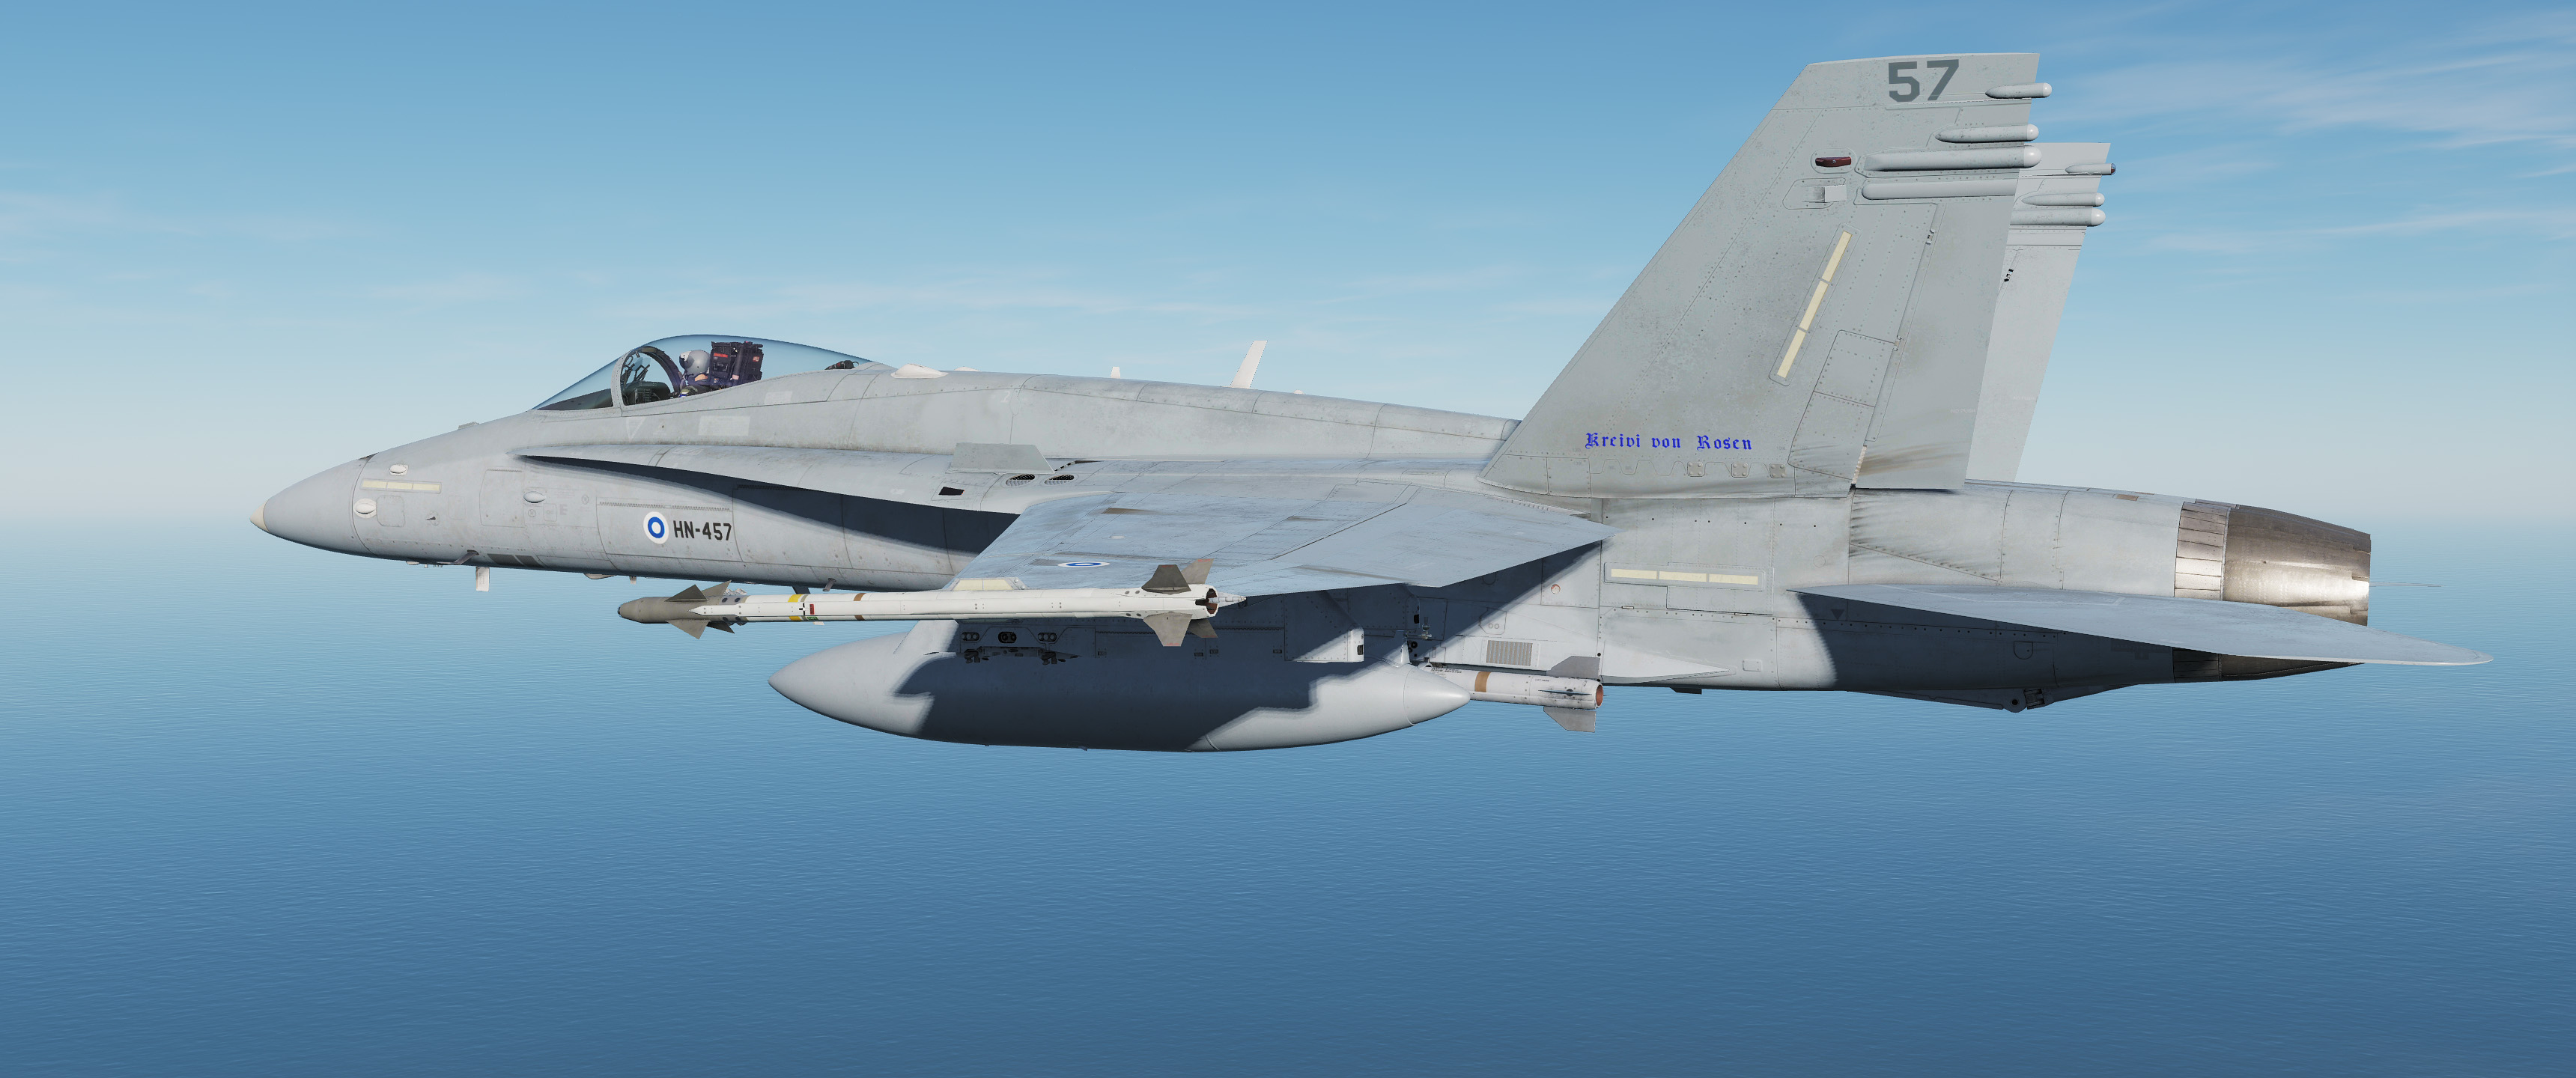 Finnish Air Force F-18C Skin Pack v.1.1